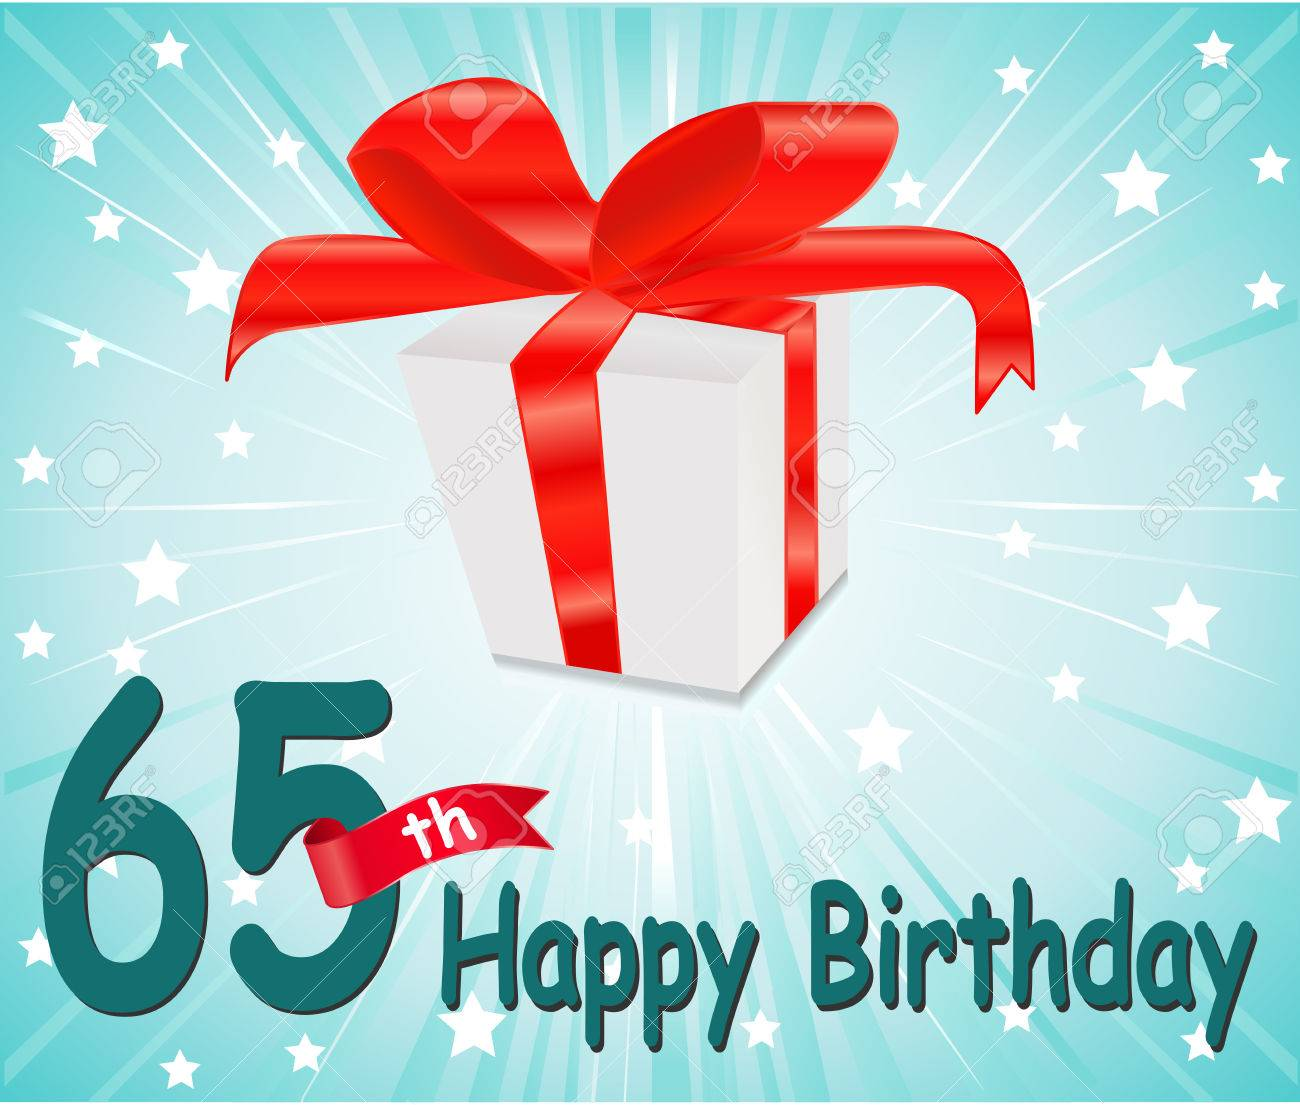 65 Year Happy Birthday Card With Gift And Colorful Background Stock Vector